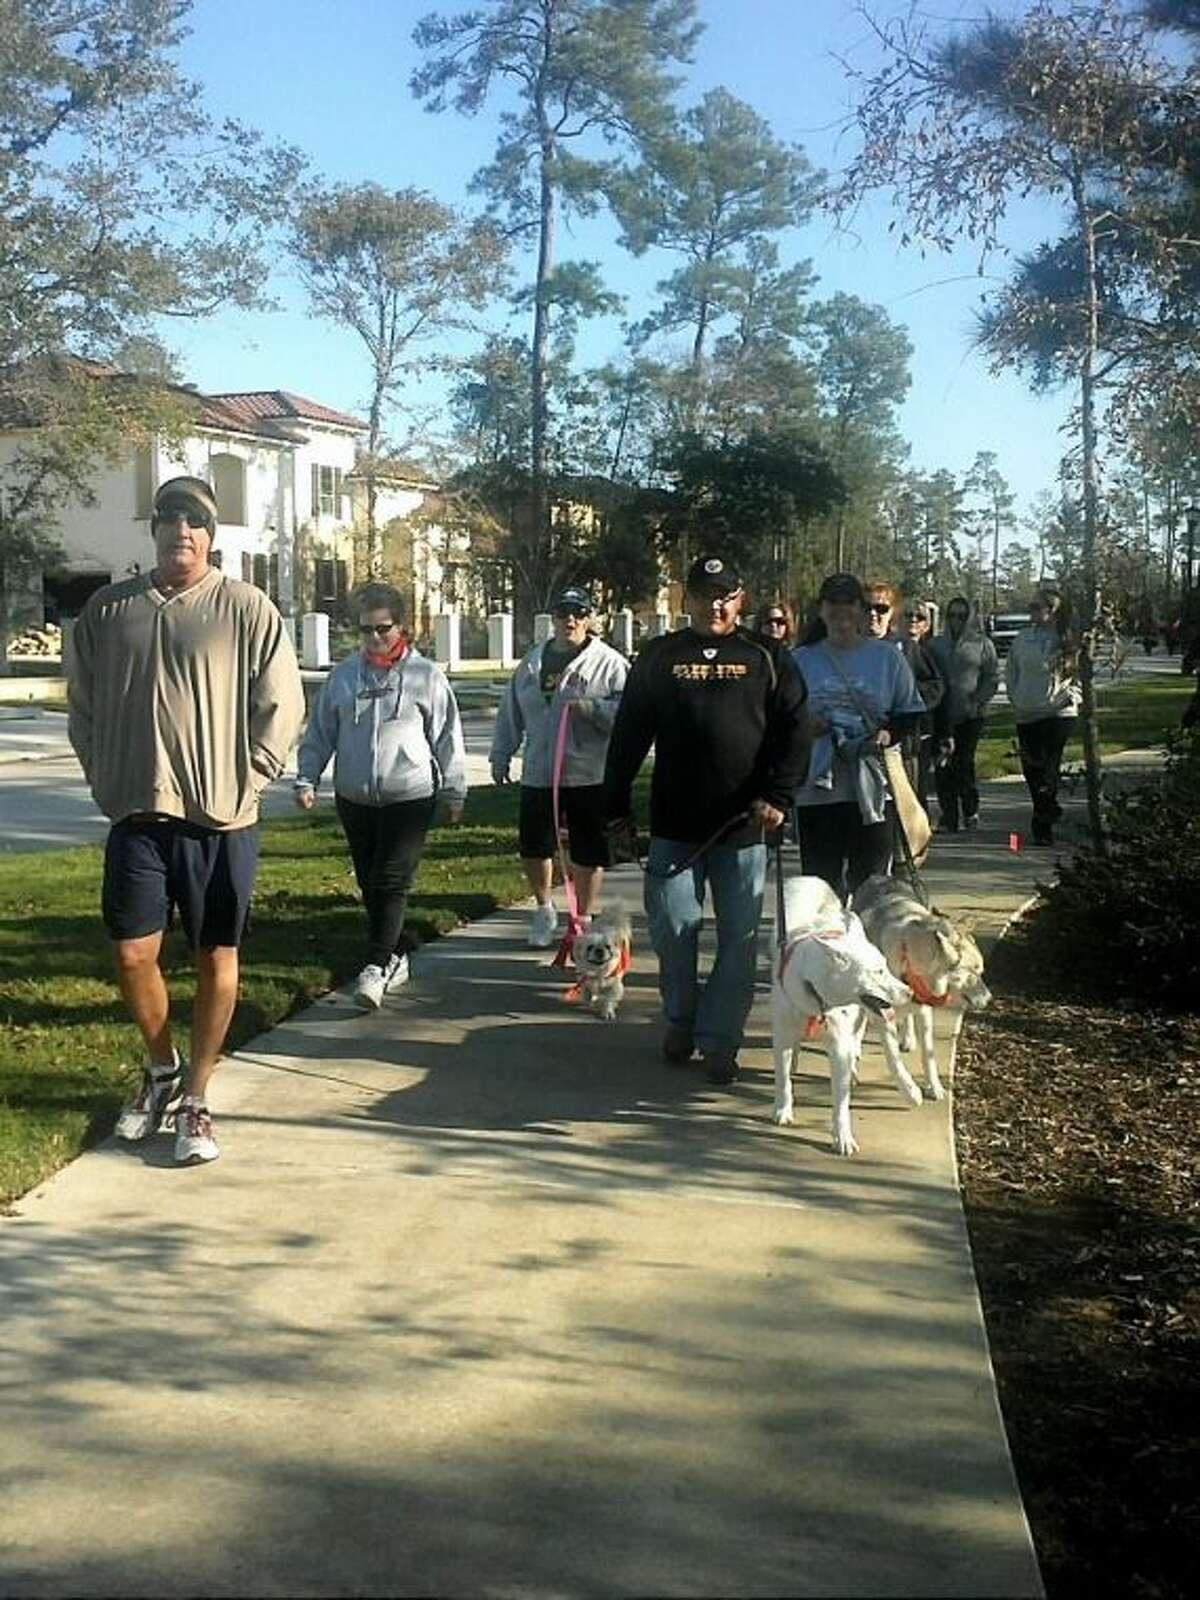 Lori Gaskill (walking dog with pink leash) and particpants at a MS Walk.